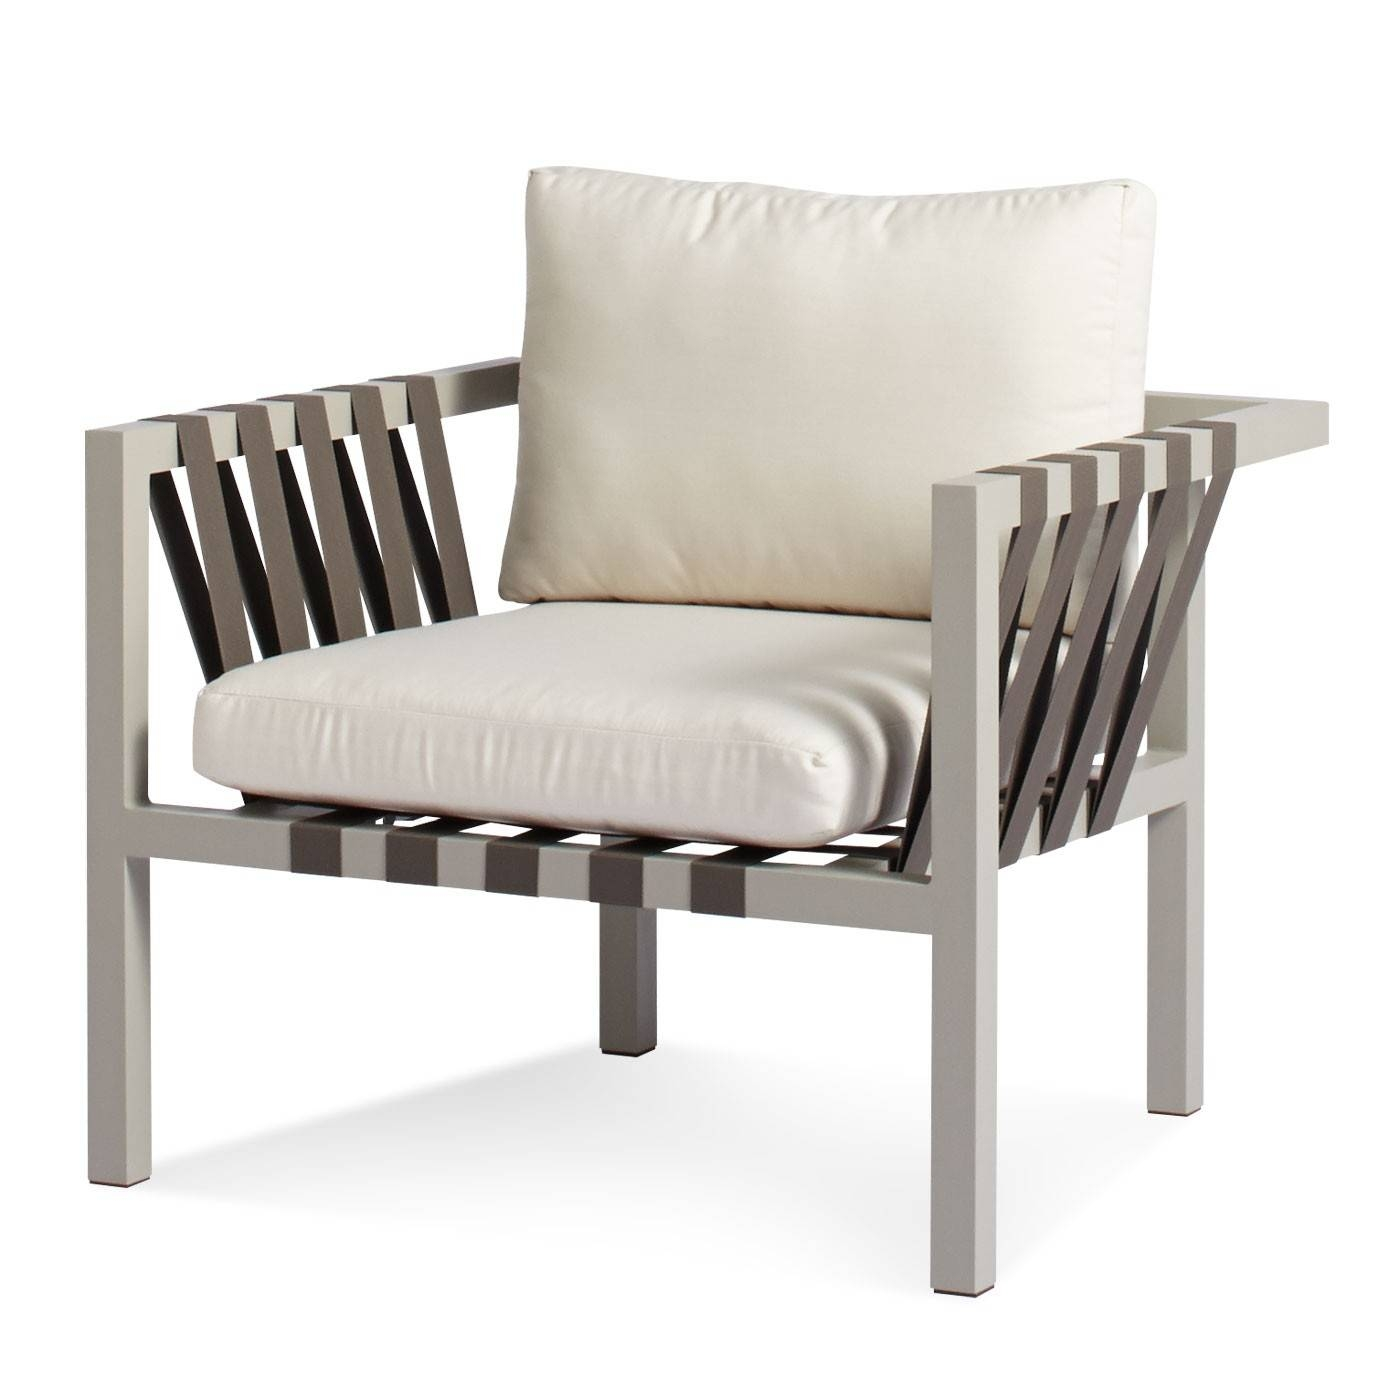 Furniture : Cheap Outdoor Furniture Outdoor Garden Furniture Patio regarding Outdoor Sofas And Chairs (Image 4 of 15)